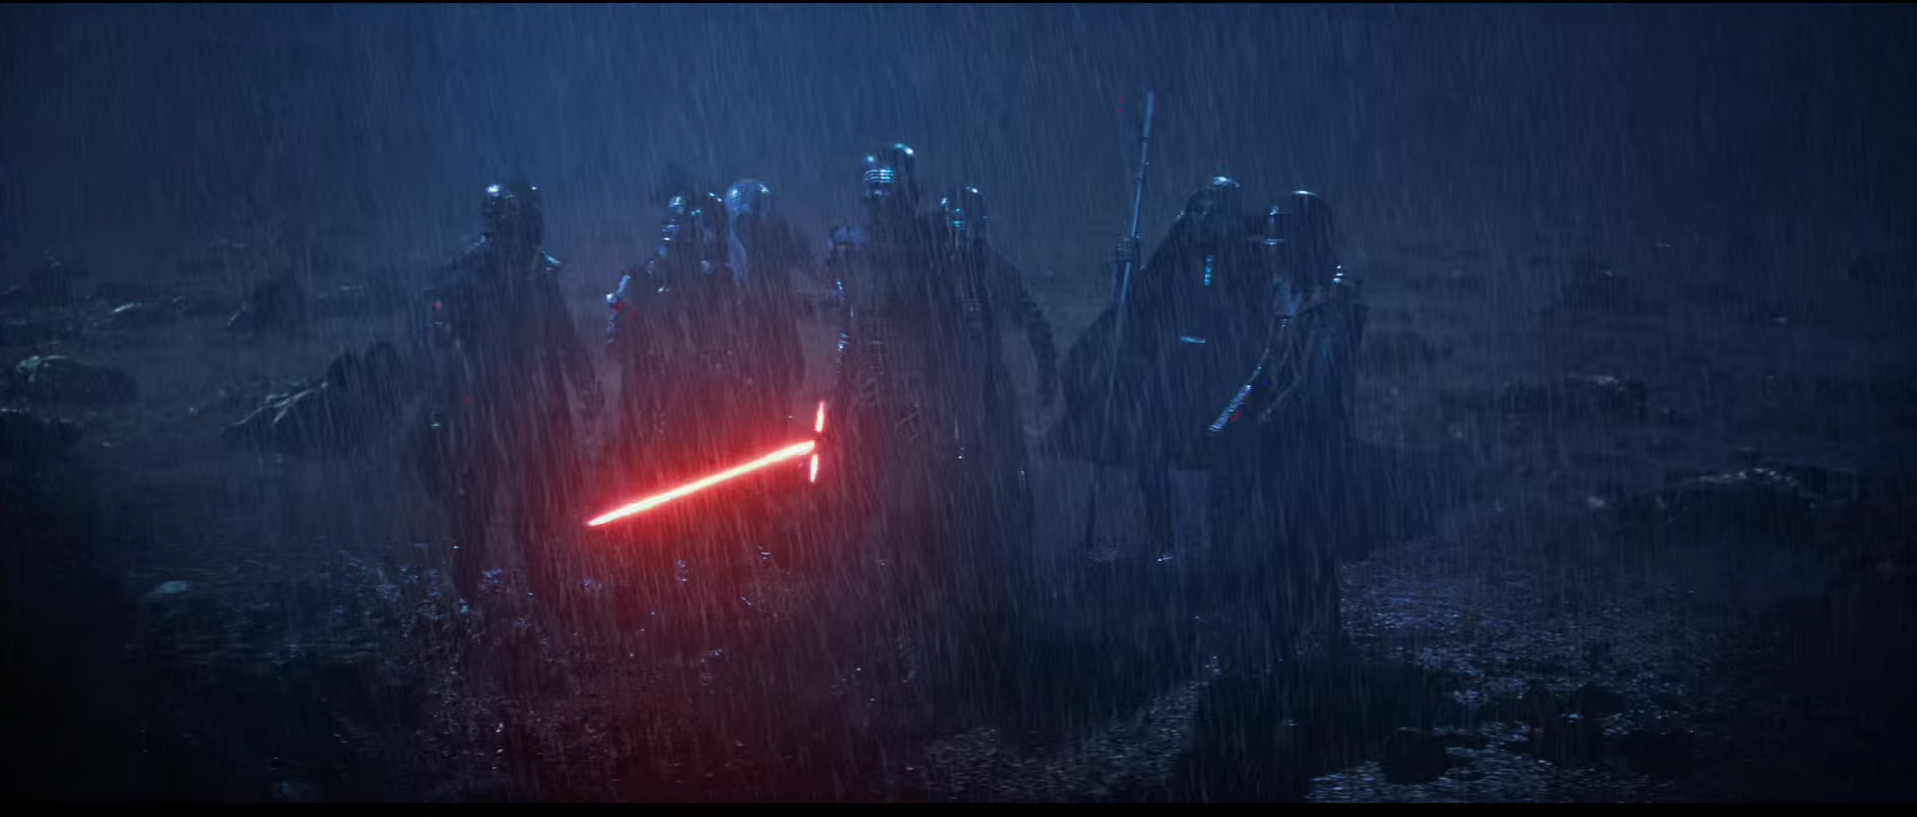 Who's Ren? Surely, a lot has happened in the 30 years between JEDI and FORCE AWAKENS. What if Ren was Luke's first apprentice -- maybe his son, but more likely his nephew (Han and Leia's eldest). Anyway, things go south and Ren turns toward the Dark Side; maybe Luke has to kill him. Kylo -- the younger brother, the second-best, the Faramir -- picks up the banner, training incomplete. He'll forever live in Ren's shadow, but will finish what he started.